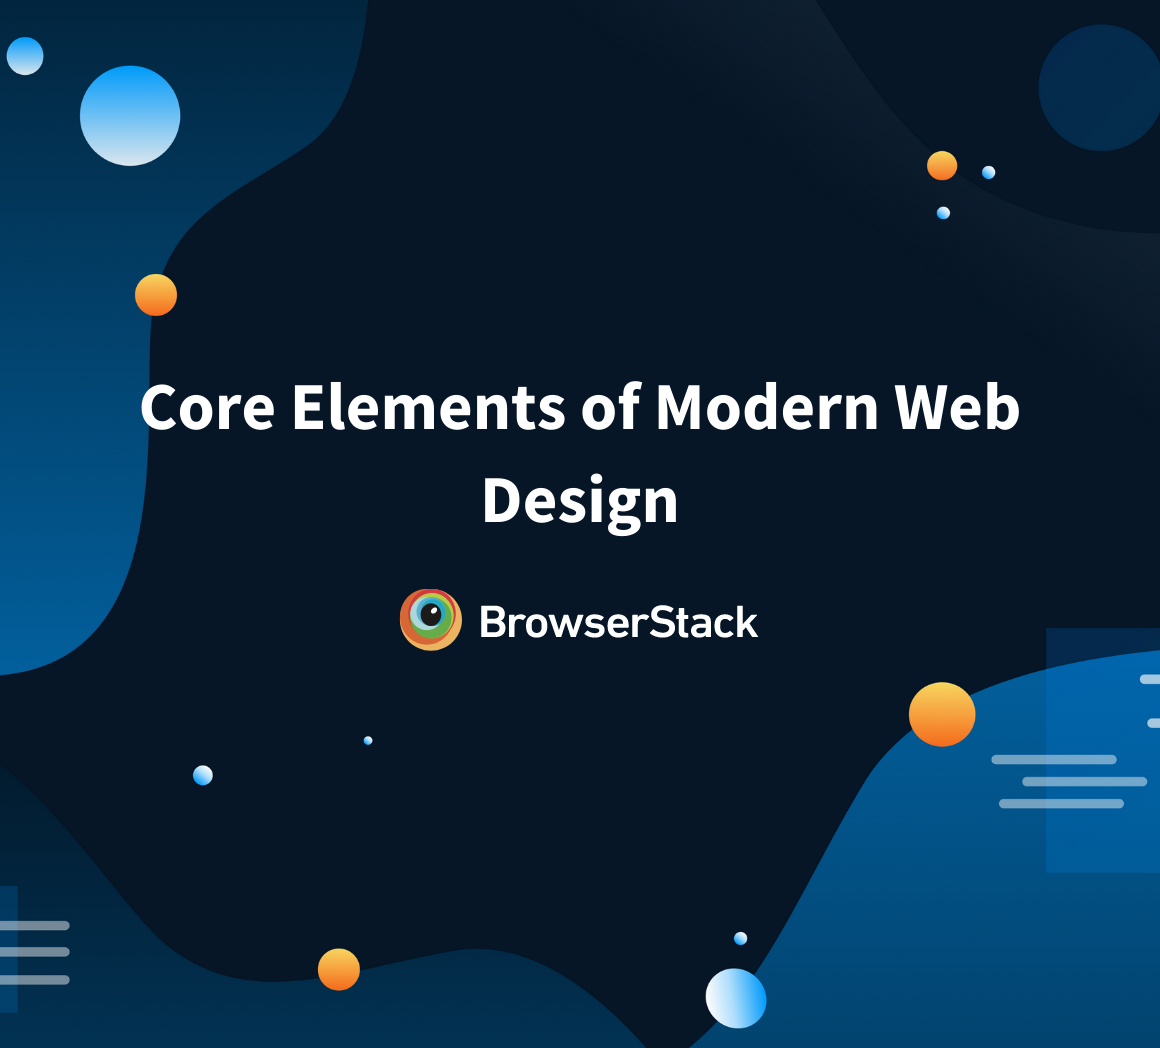 Essentials of modern web design